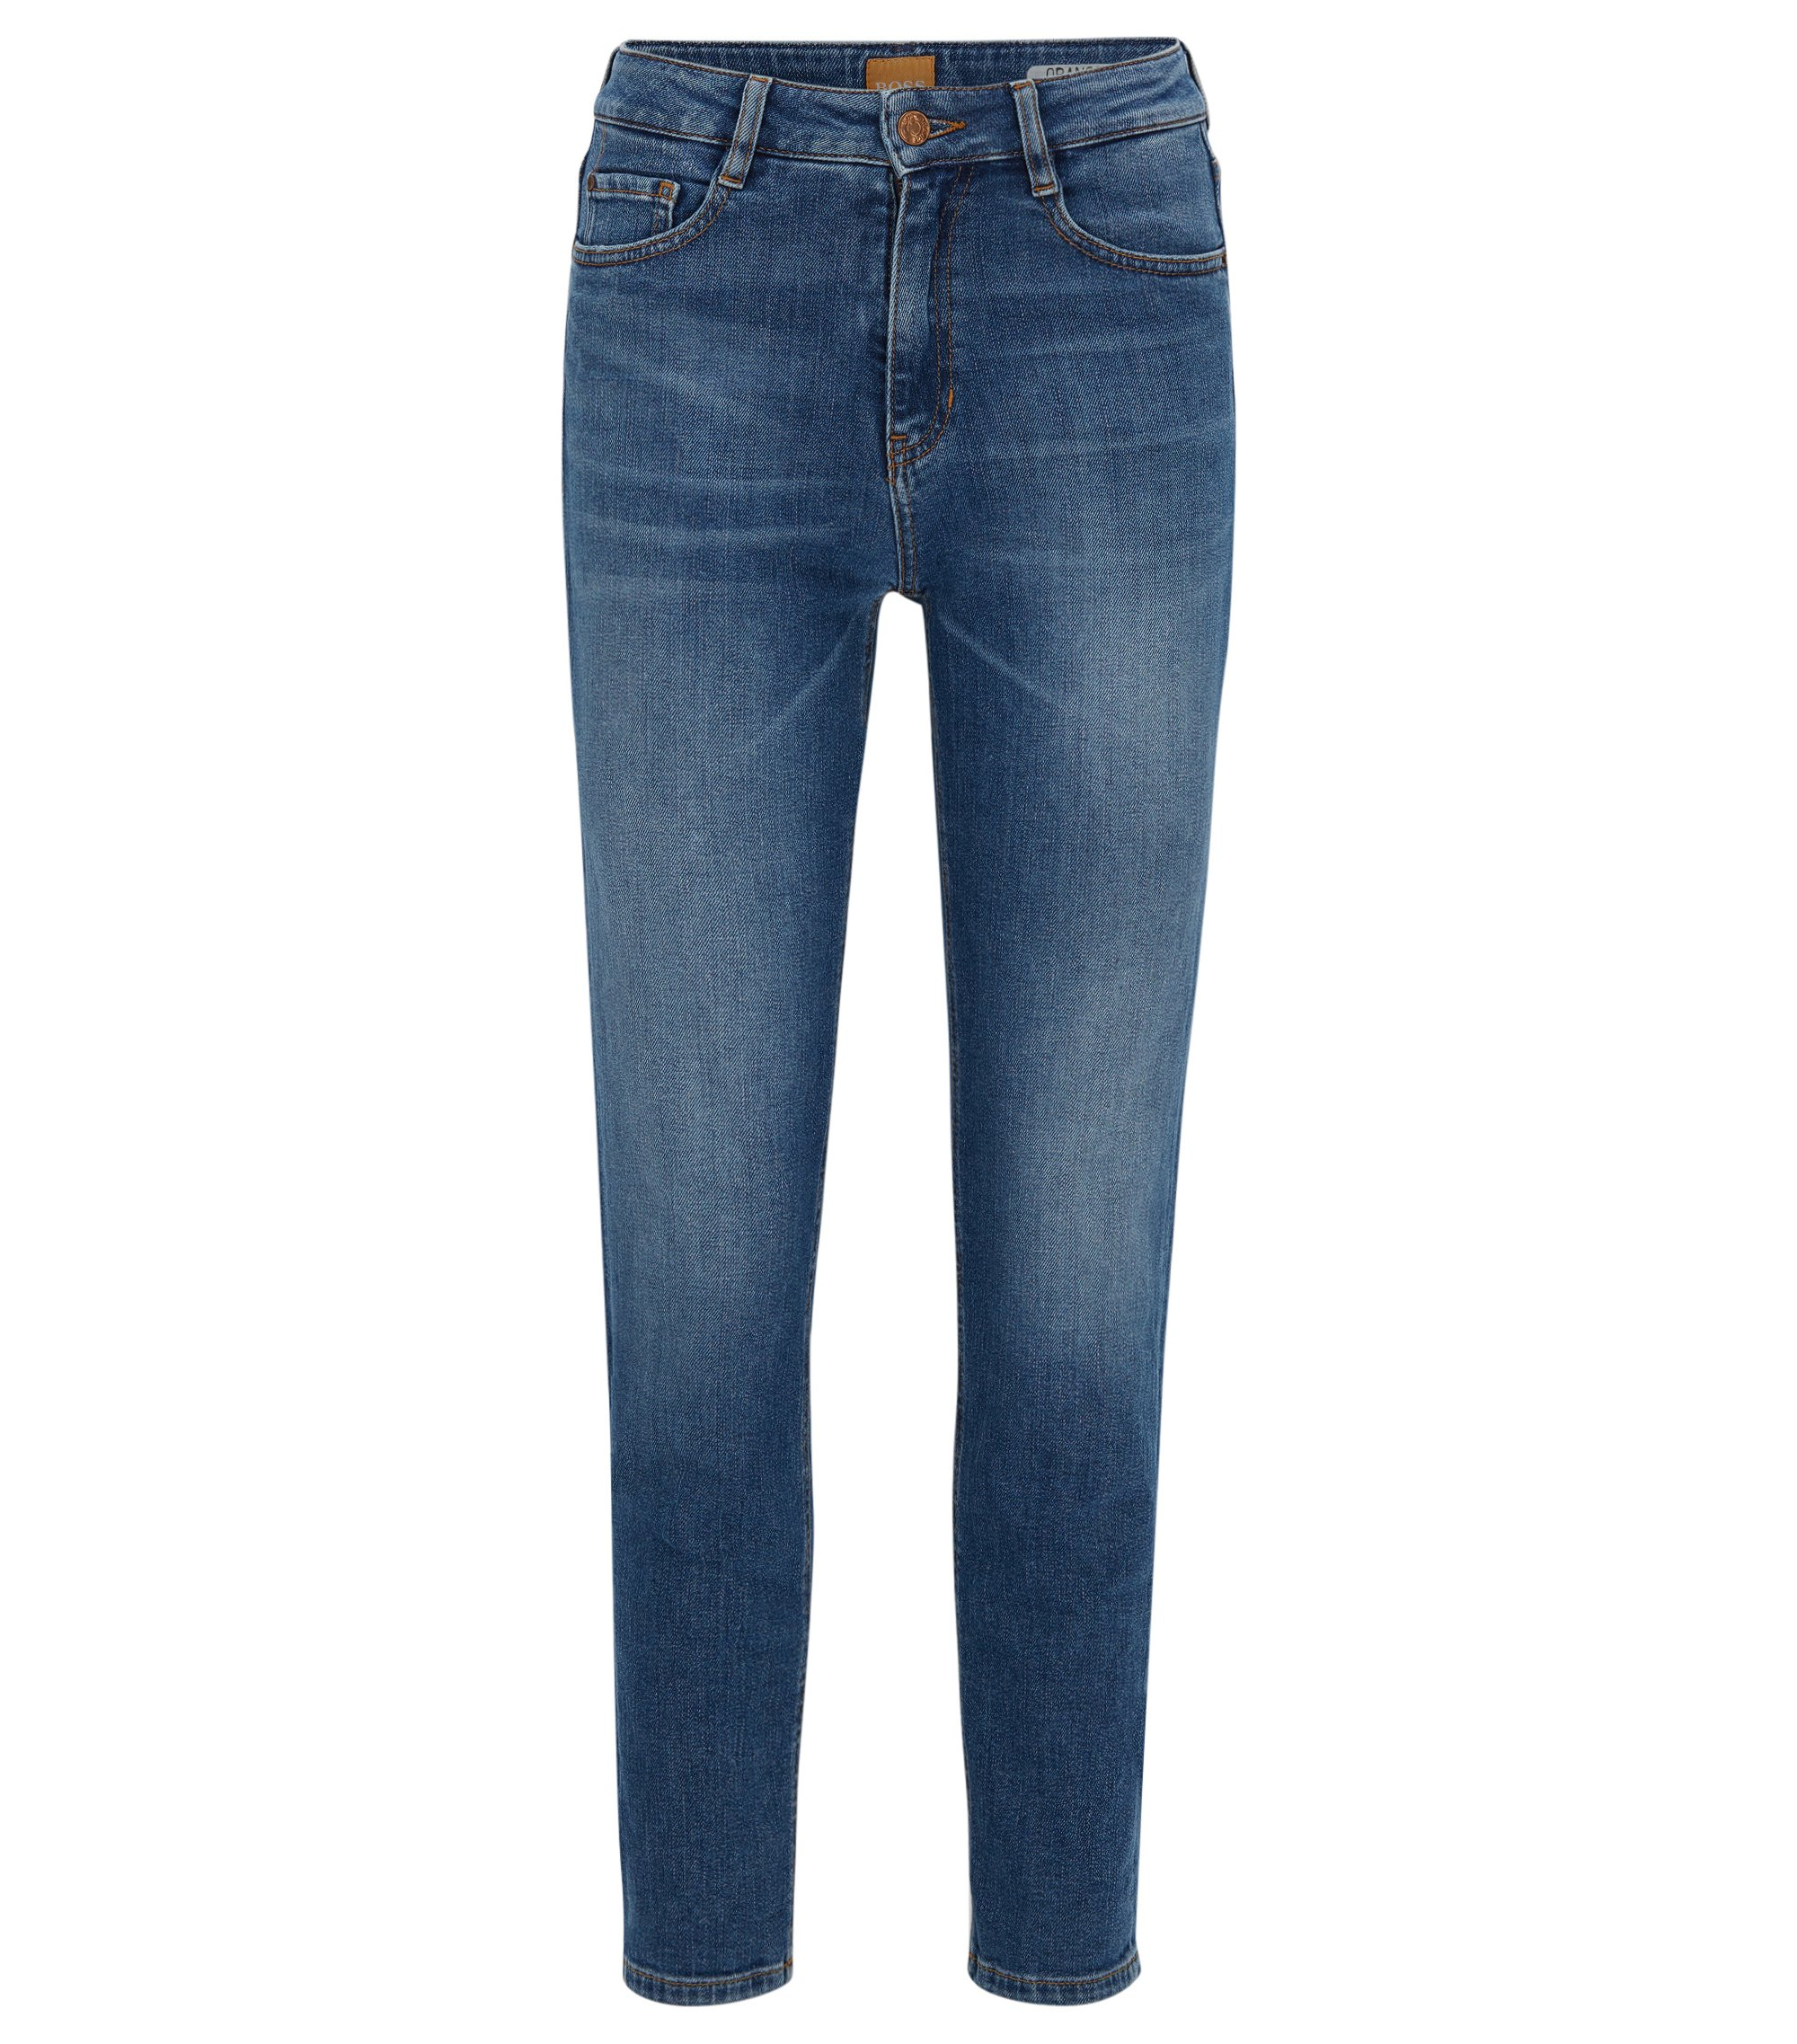 Jeans tapered fit in denim elasticizzato slub yarn, Blu scuro